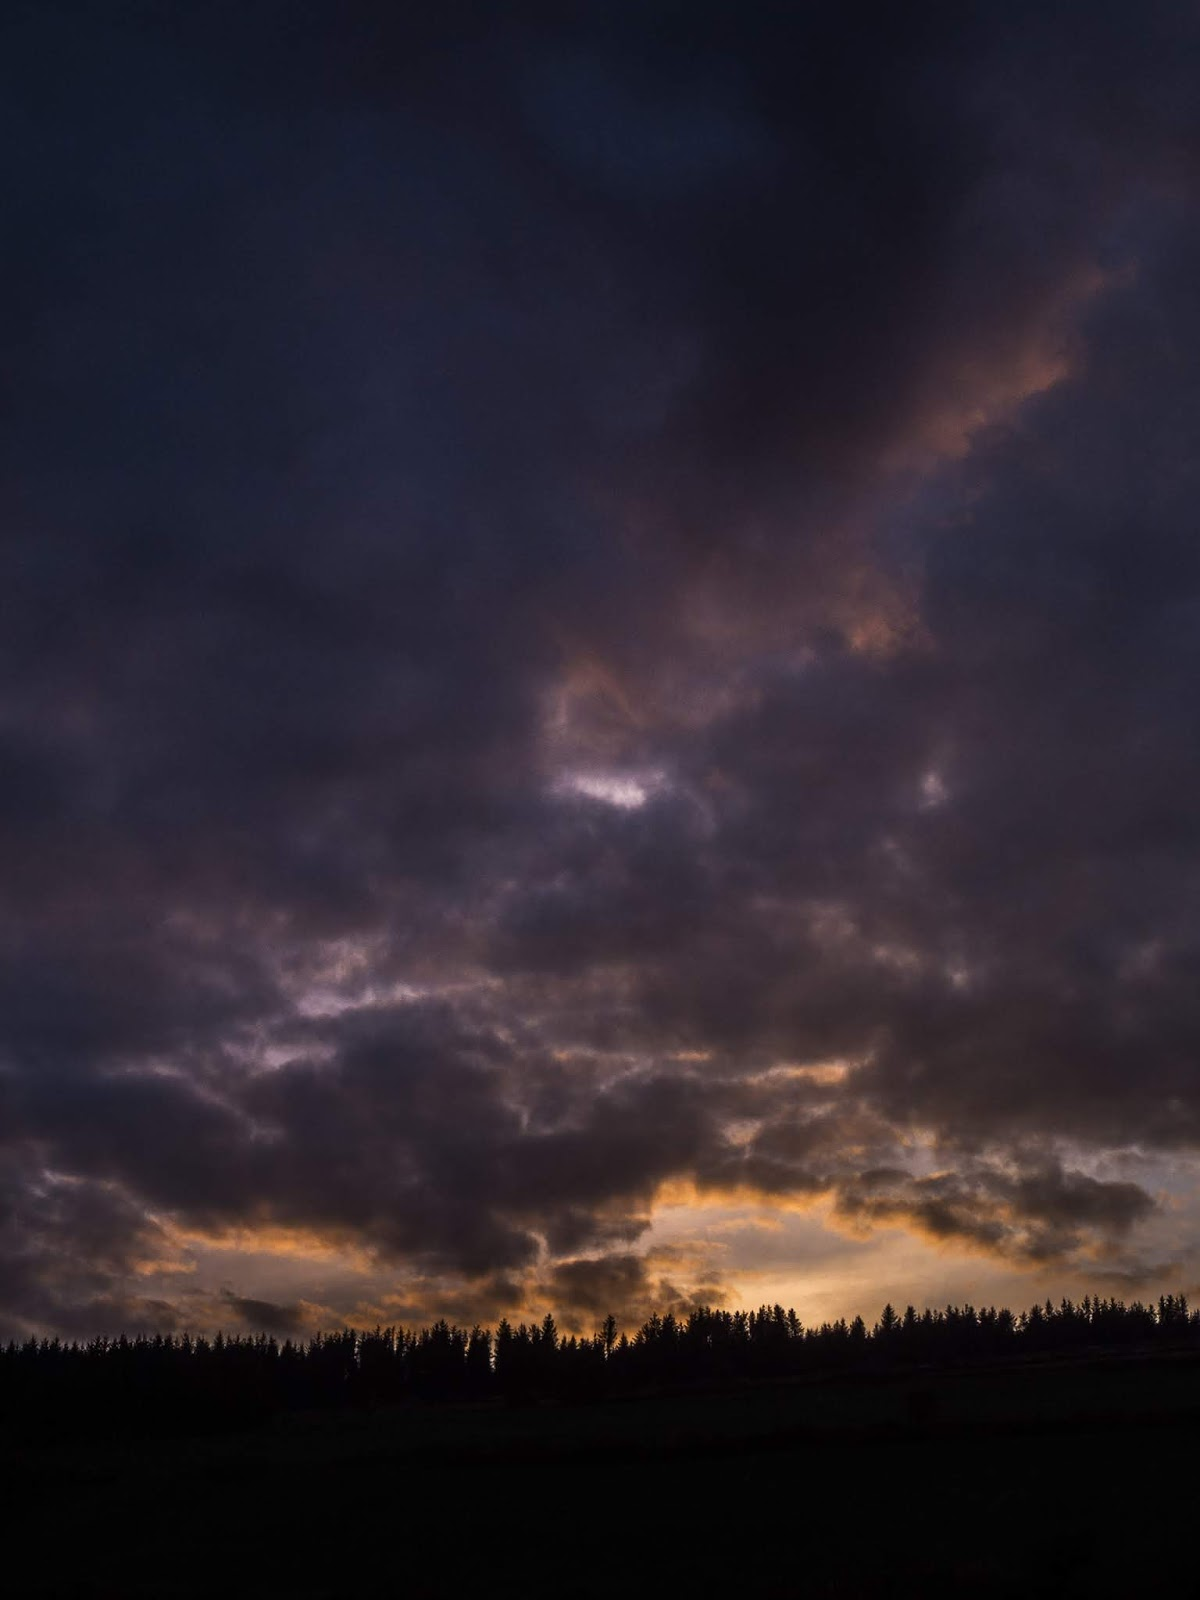 Sunset clouds over forestry on a mountain in North Cork, Ireland.